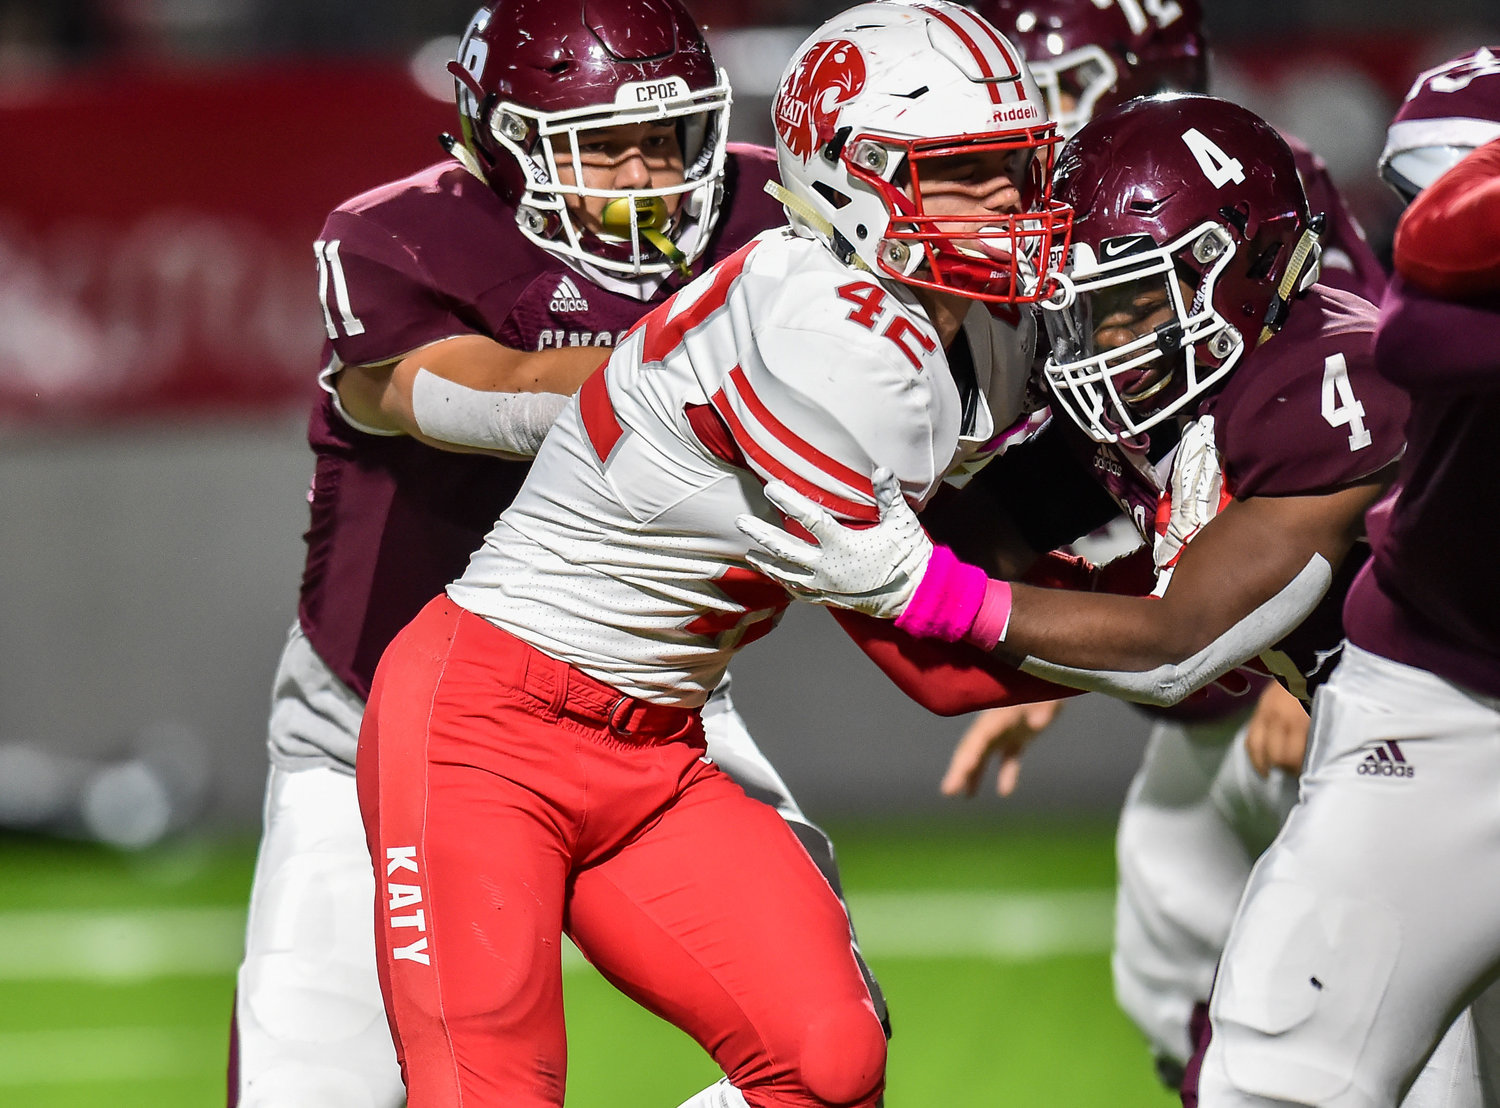 Katy, Tx. Oct. 25, 2019: Katy's Ty Kana (42) tries making his way around Cinco Ranch's GJ Kelly (4) during a conference game between Katy Tigers and Cinco Ranch Cougars at Legacy Stadium. (Photo by Mark Goodman / Katy Times)